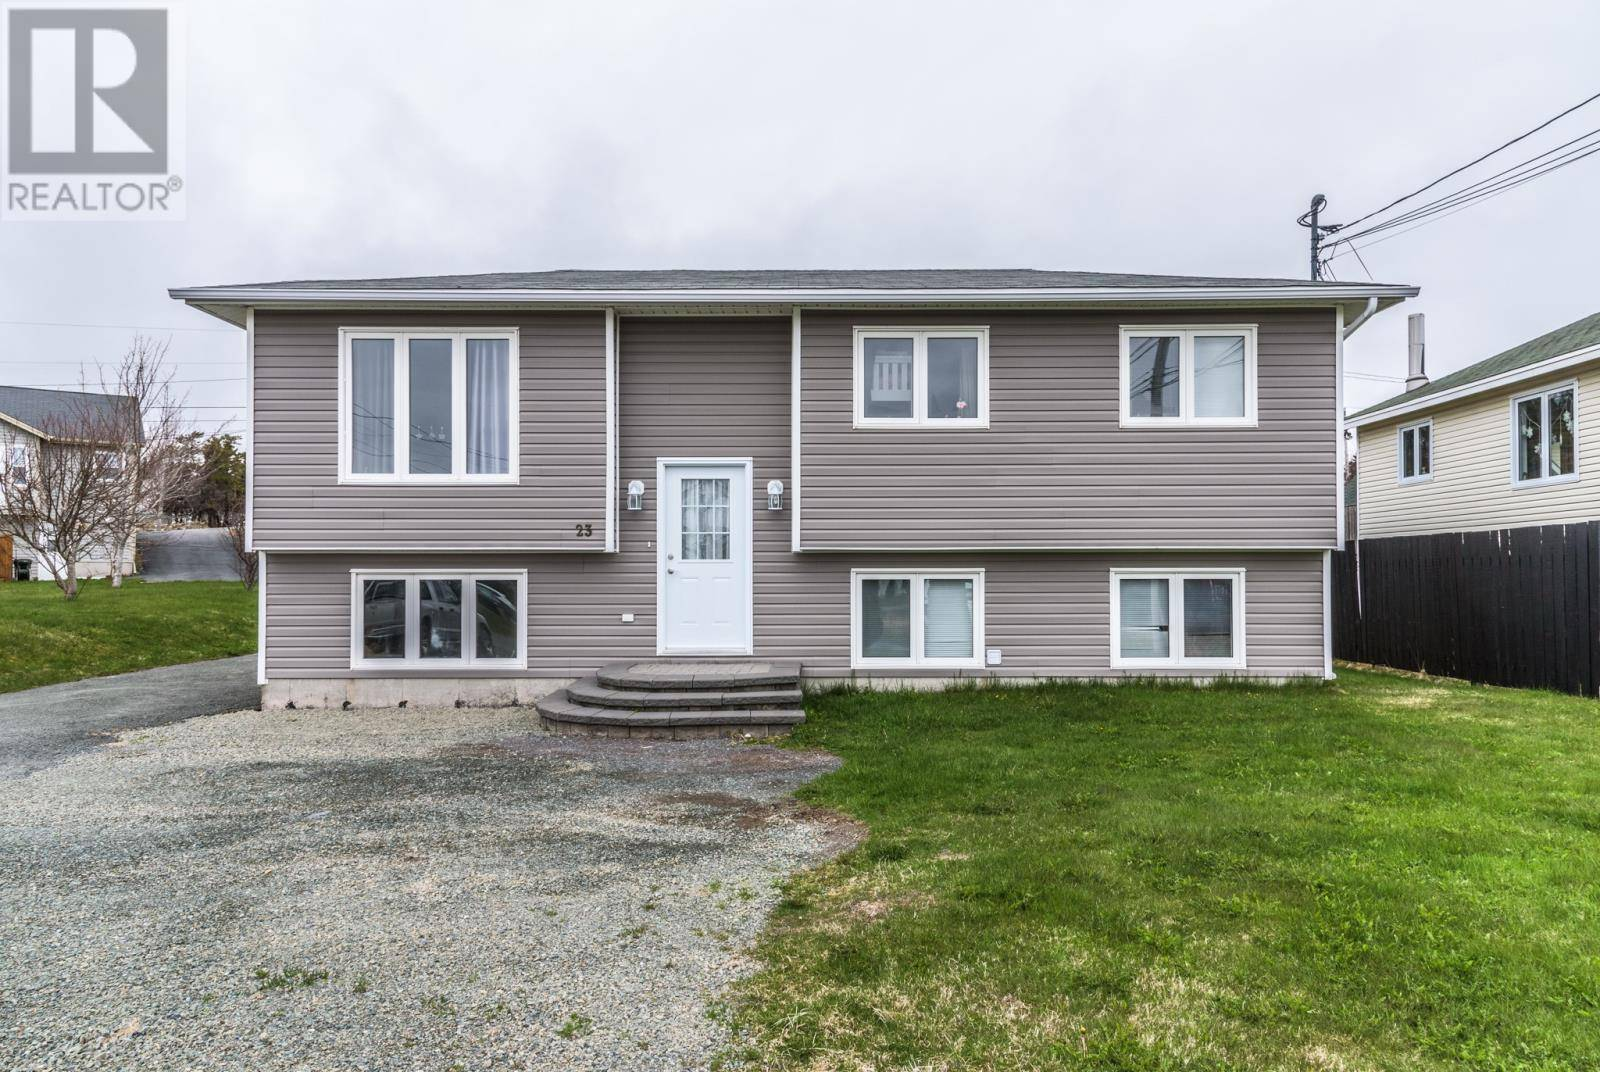 House for sale at 23 Reardons Ln Torbay Newfoundland - MLS: 1207742